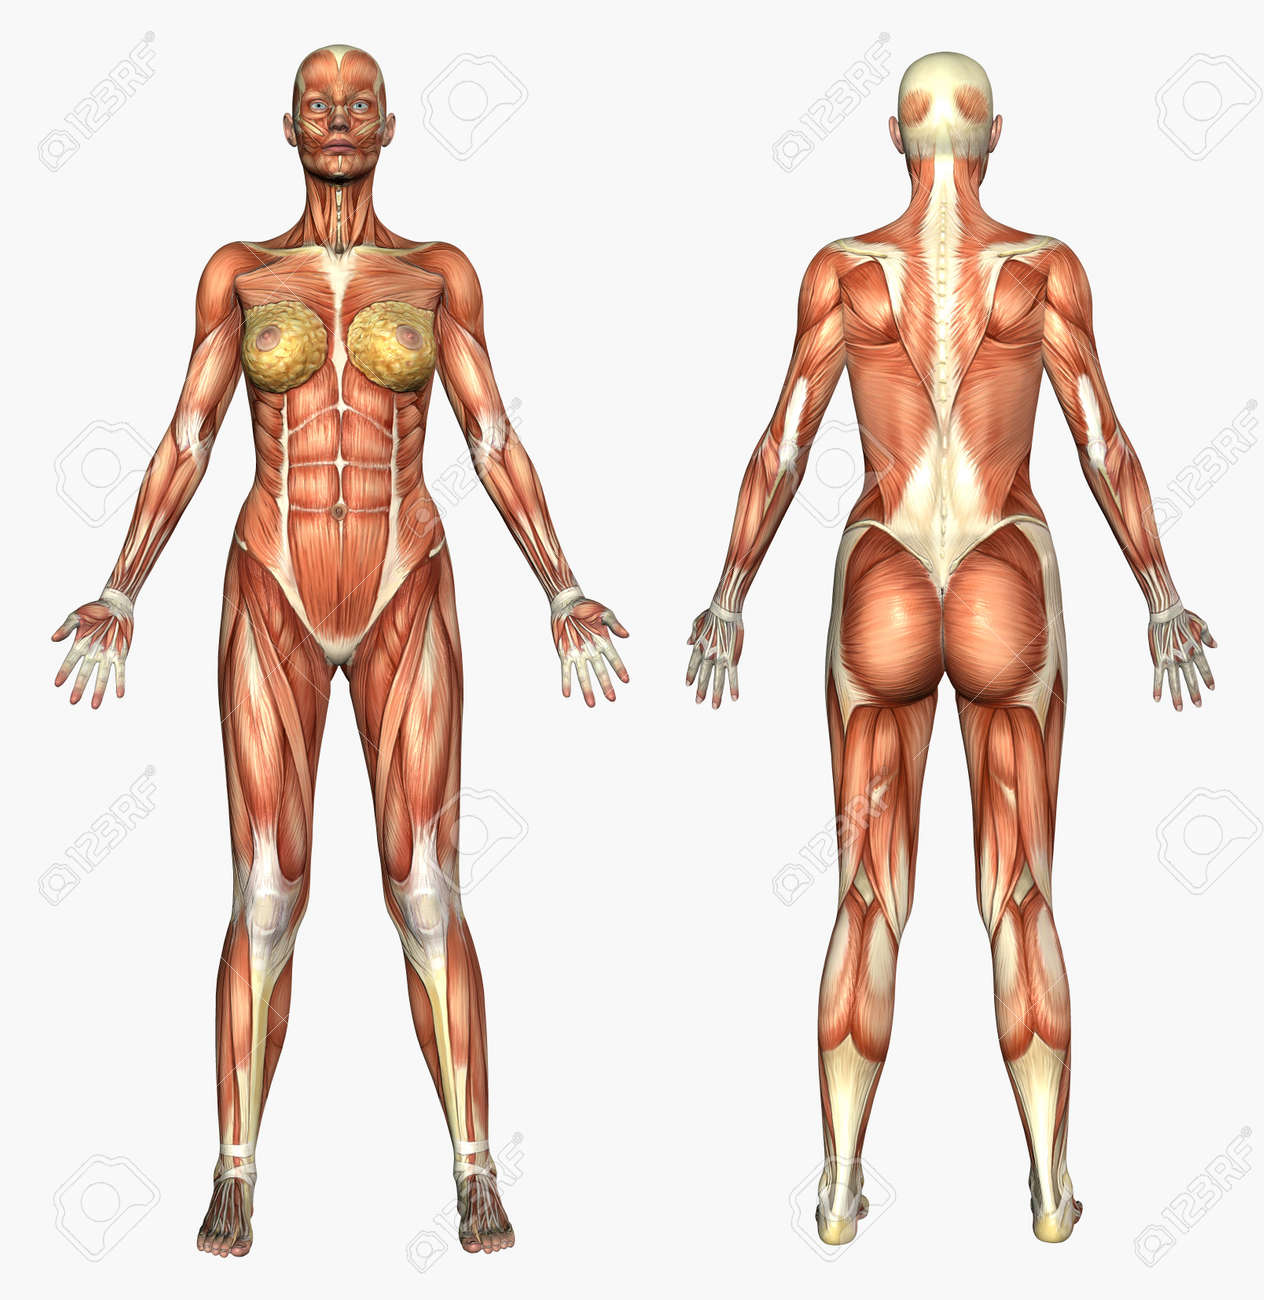 3D Render Depicting Human Anatomy - Muscles - Female. Stock Photo ...